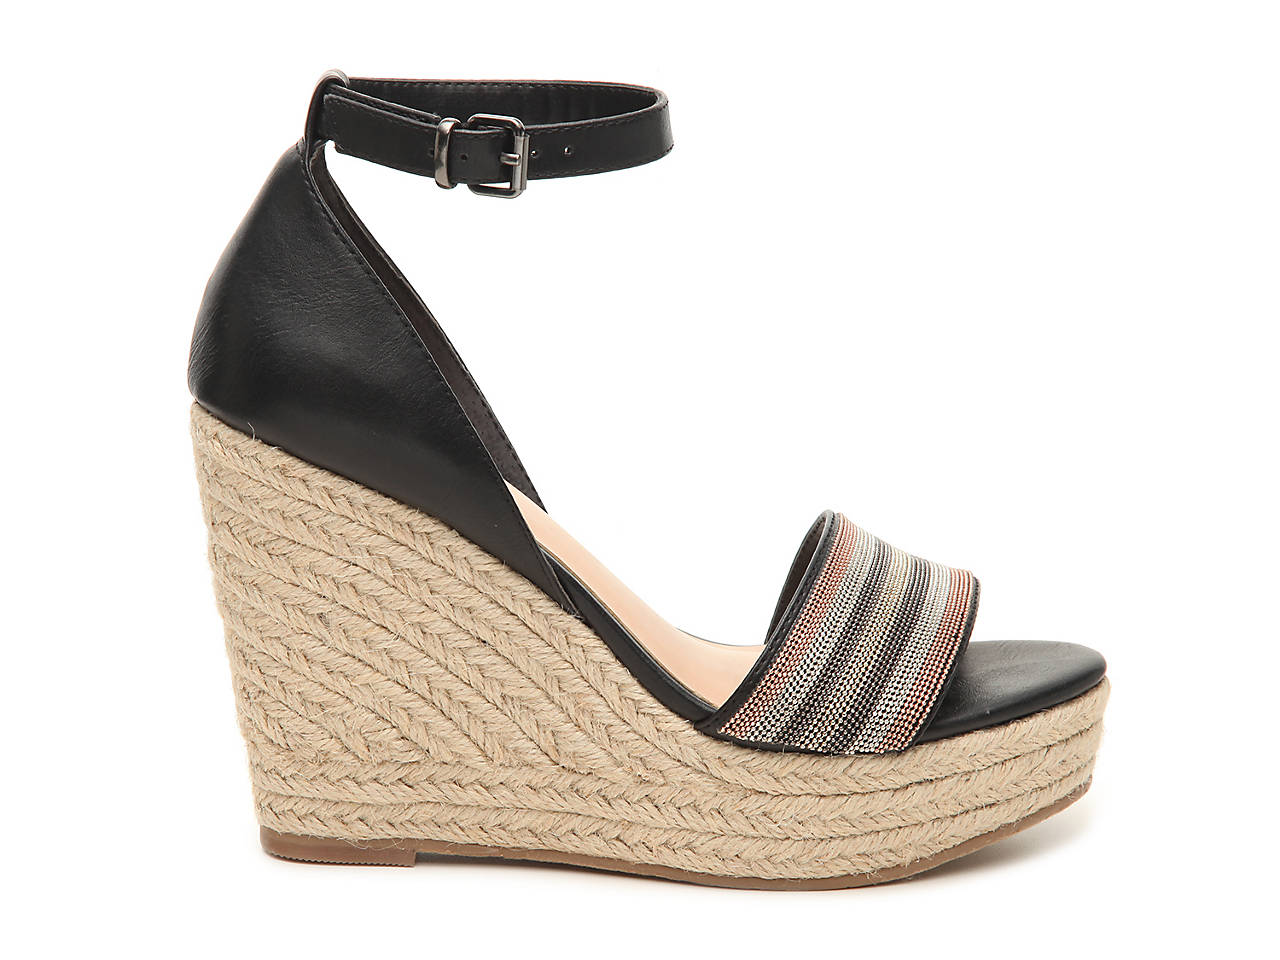 d511f49bfe5 Bleecker   Bond Mariel Espadrille Wedge Sandal Women s Shoes